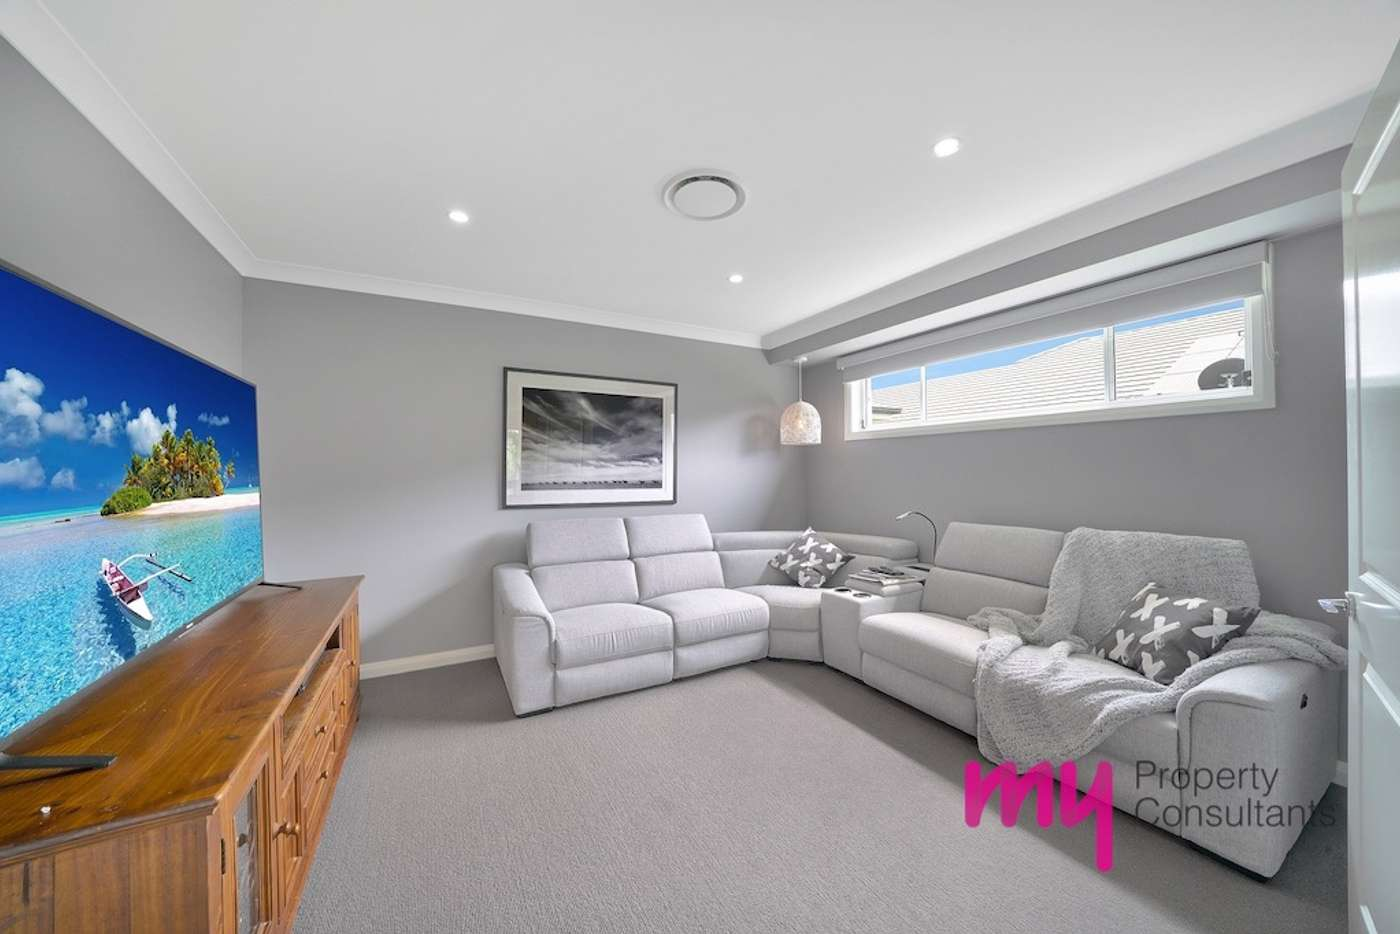 Sixth view of Homely house listing, 32 Eliza Street, Cobbitty NSW 2570